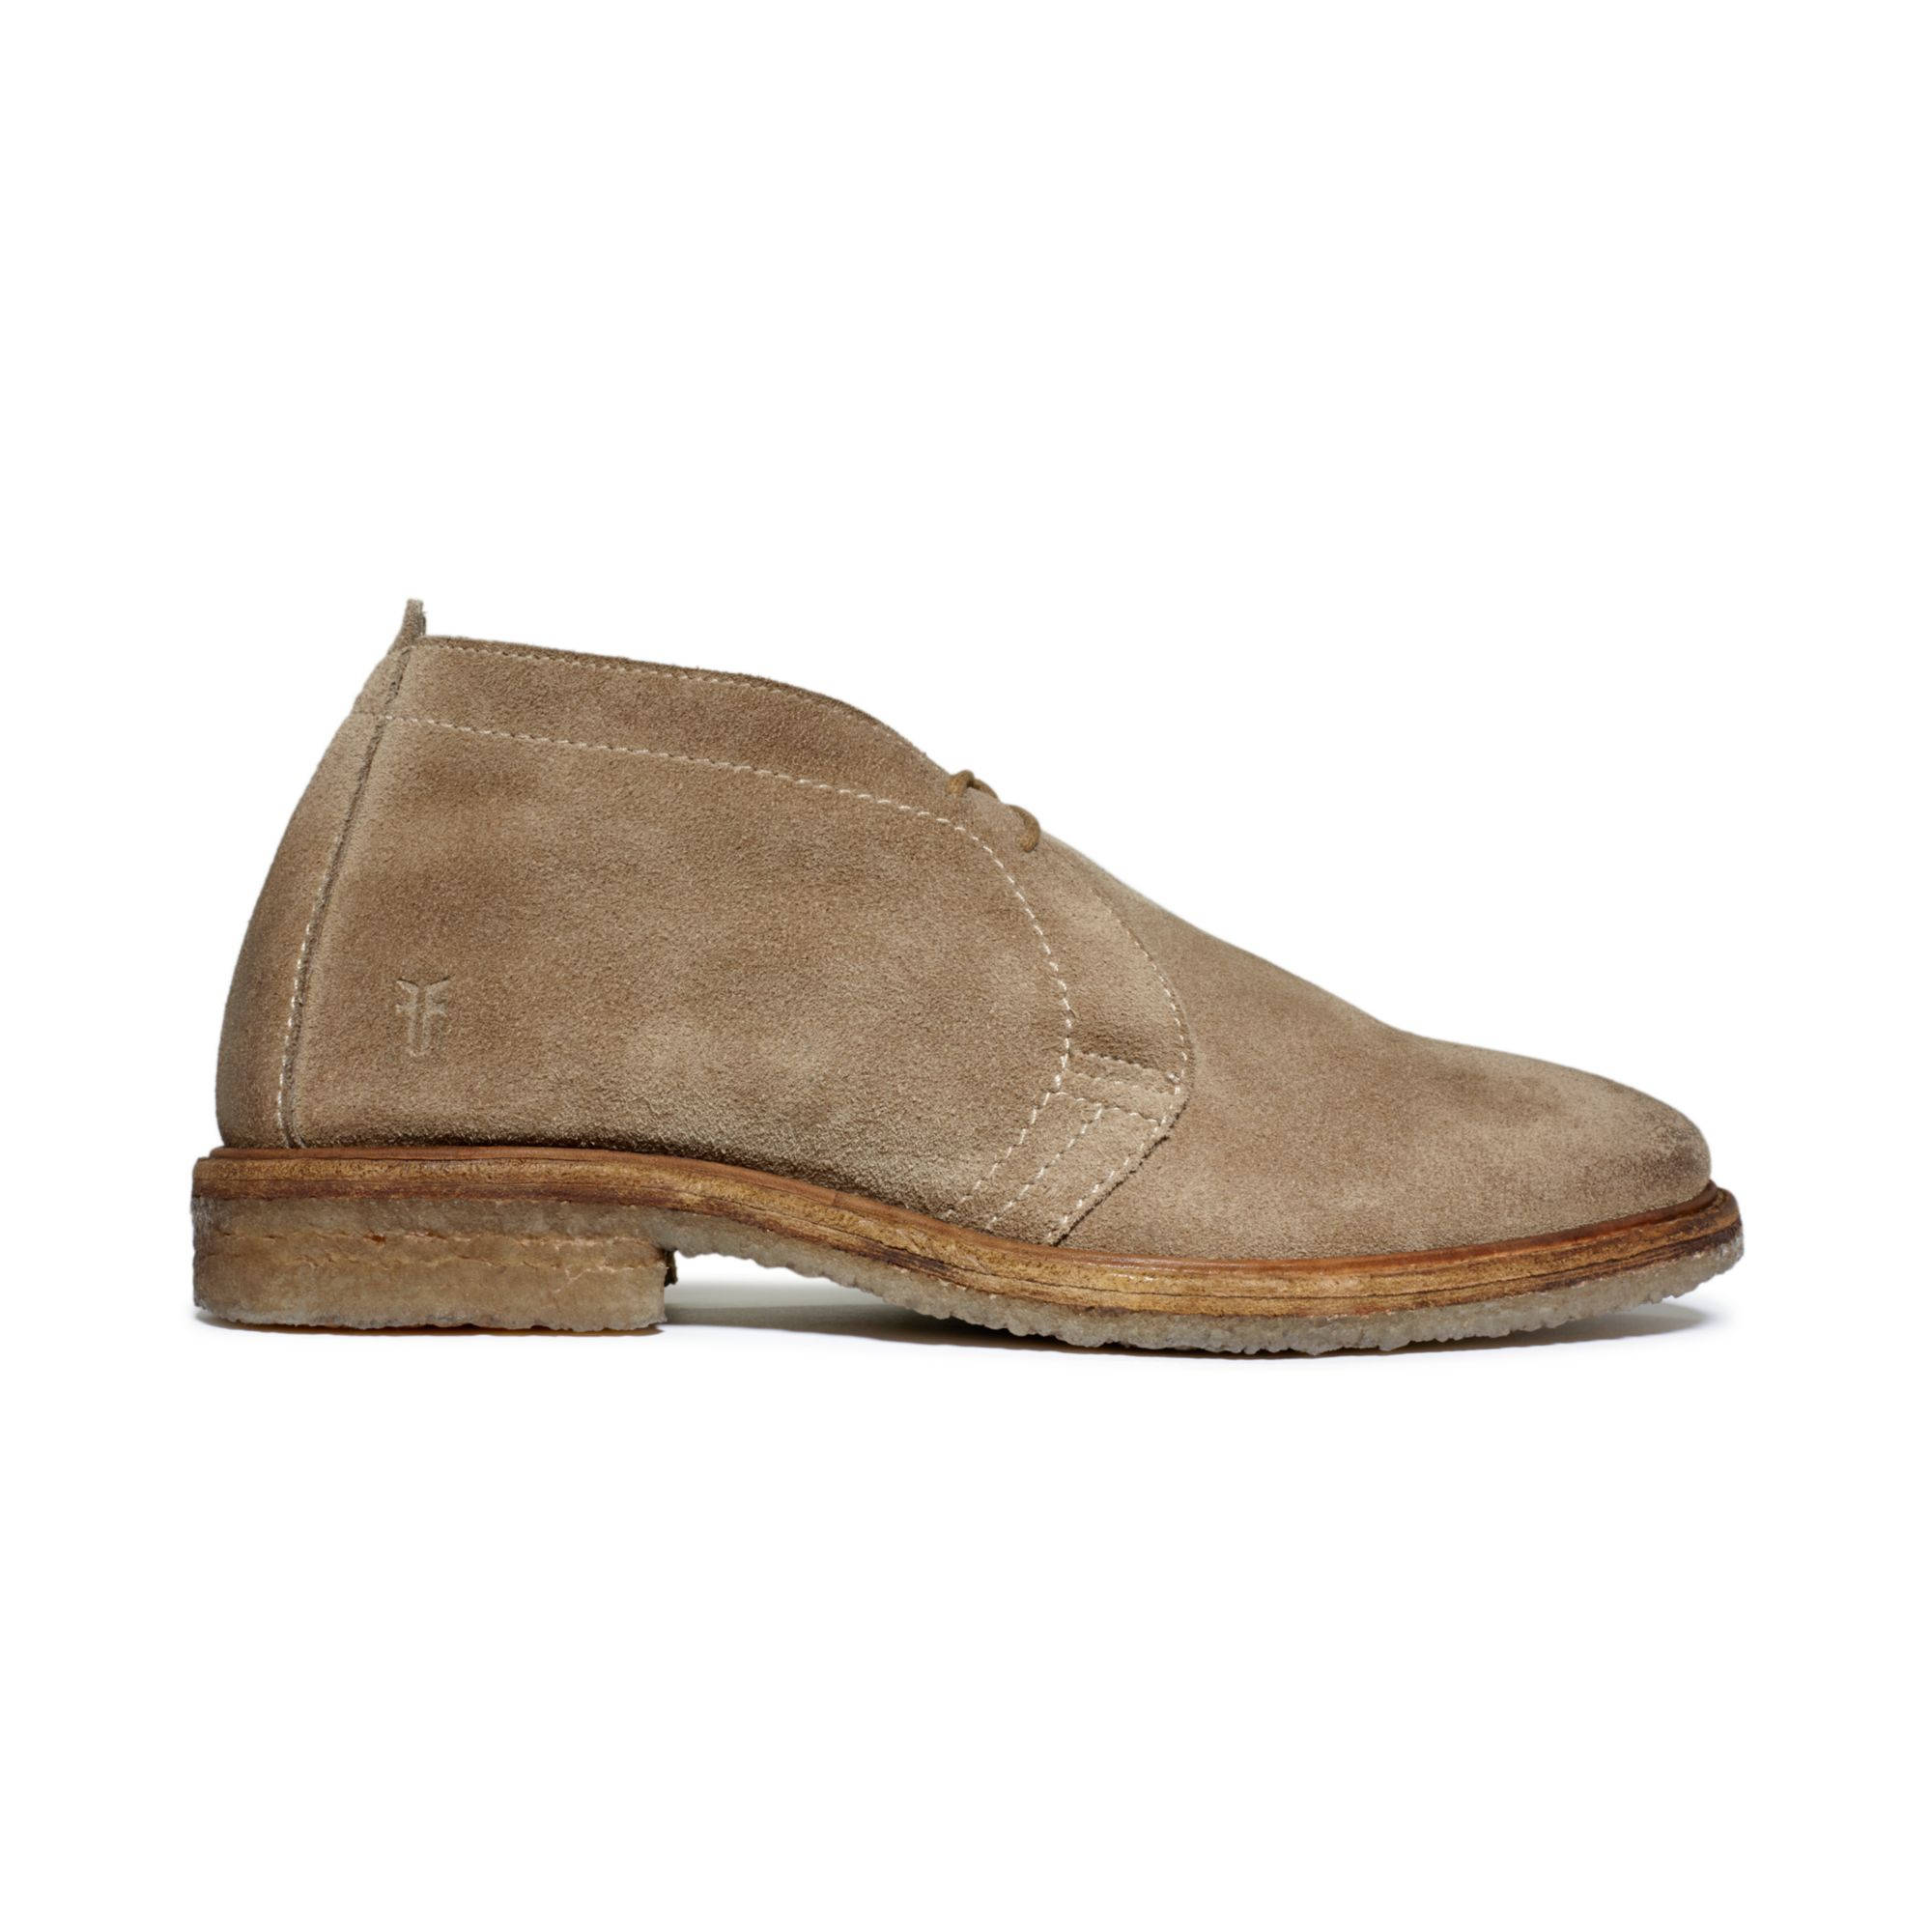 Bally Women Shoes Chukka Boots